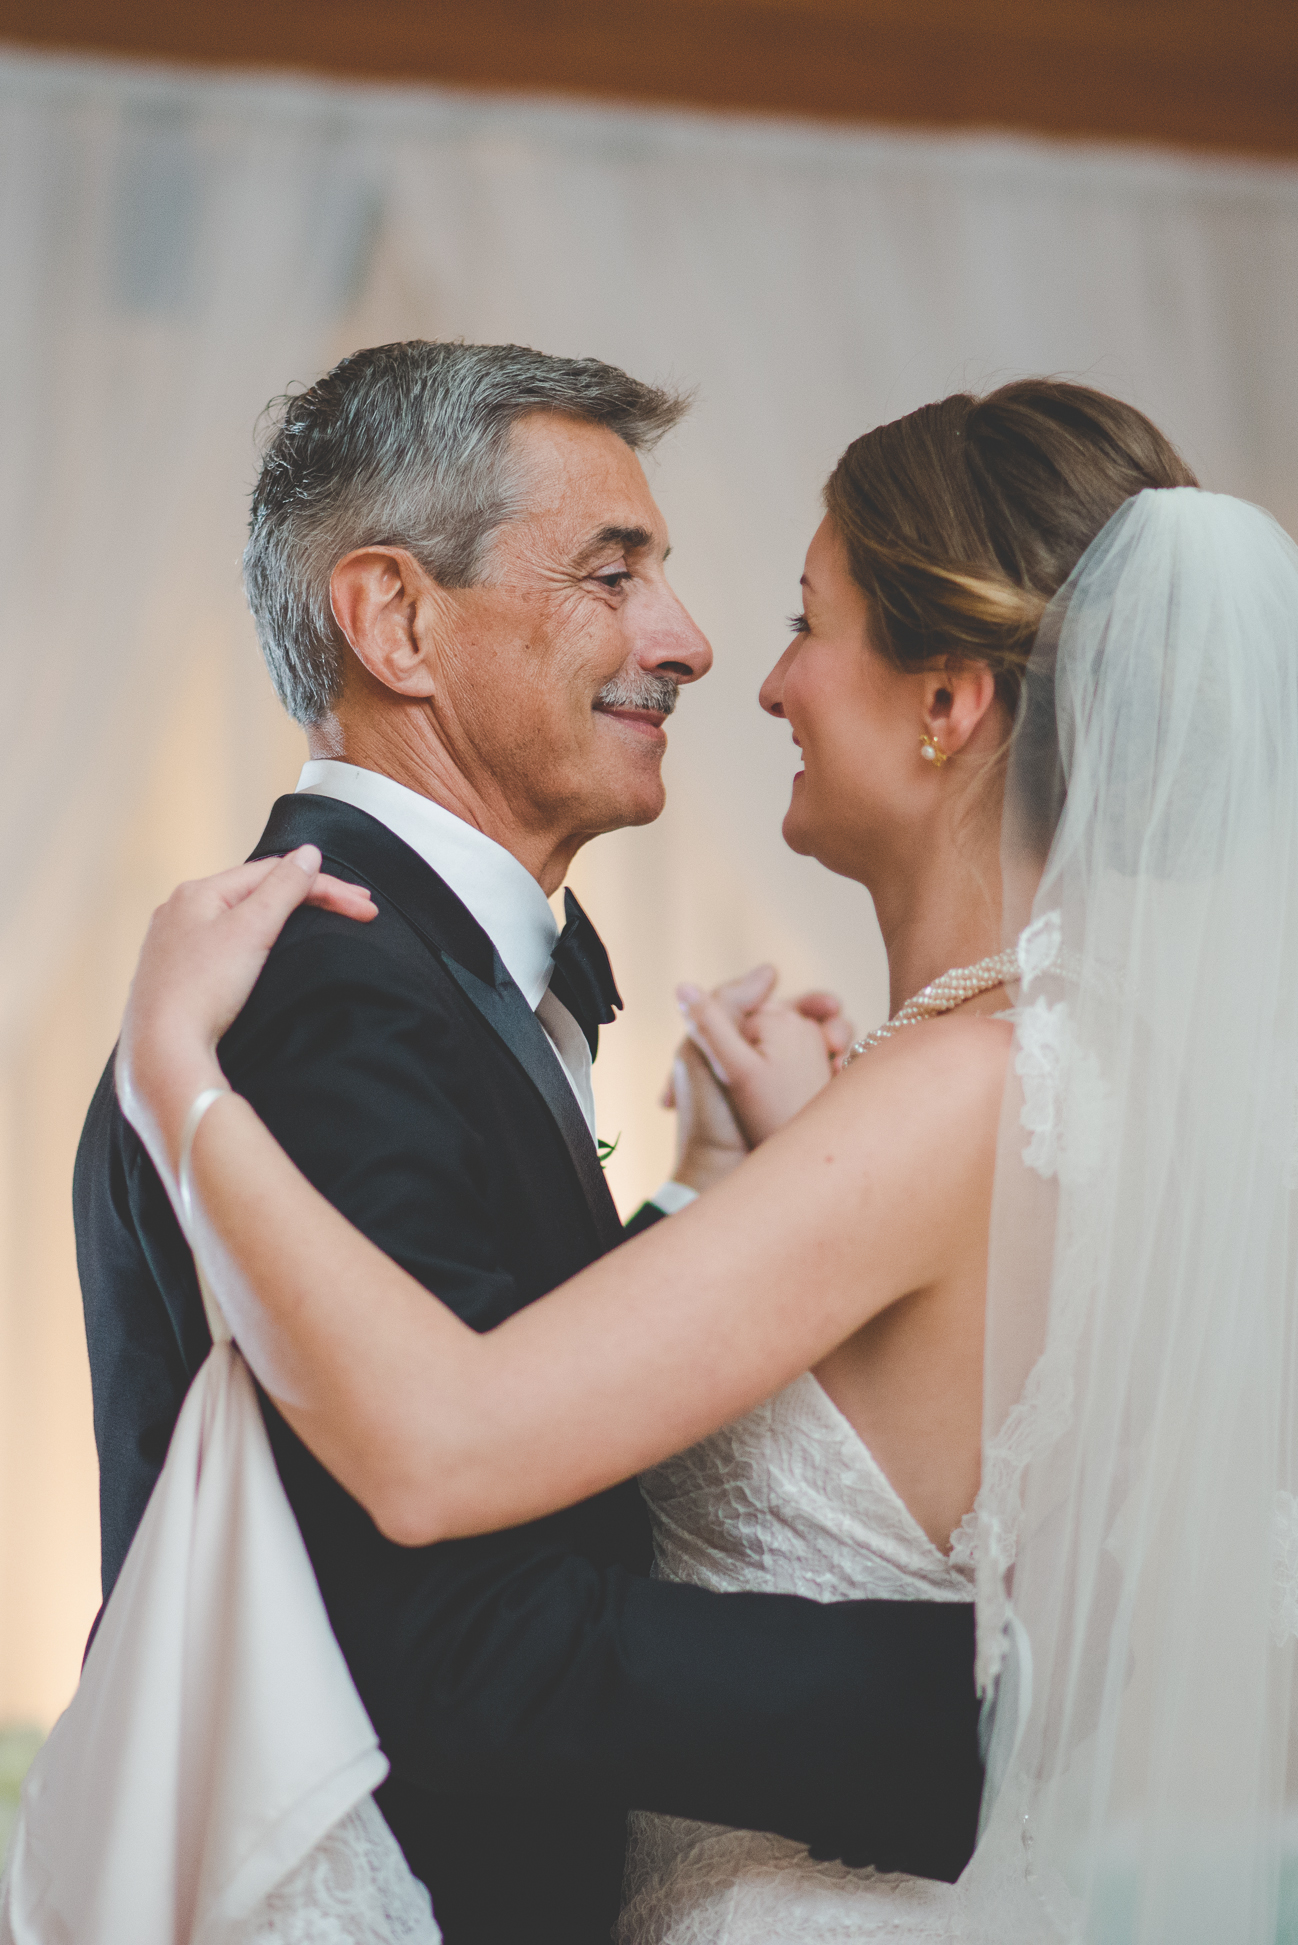 father of the bride smiles at his daughter during father daughter dance at wedding reception